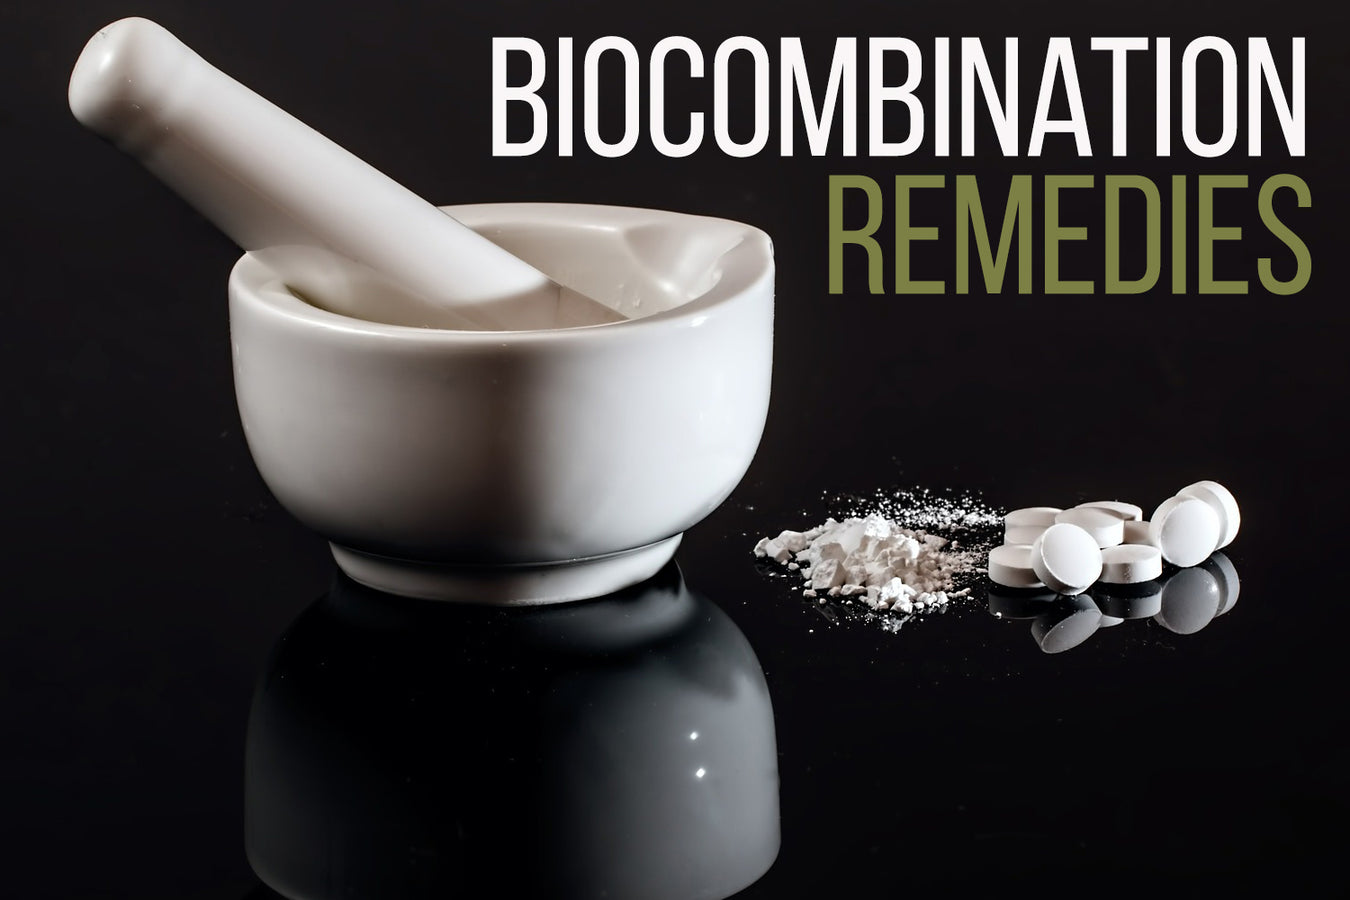 BioCombination Remedies